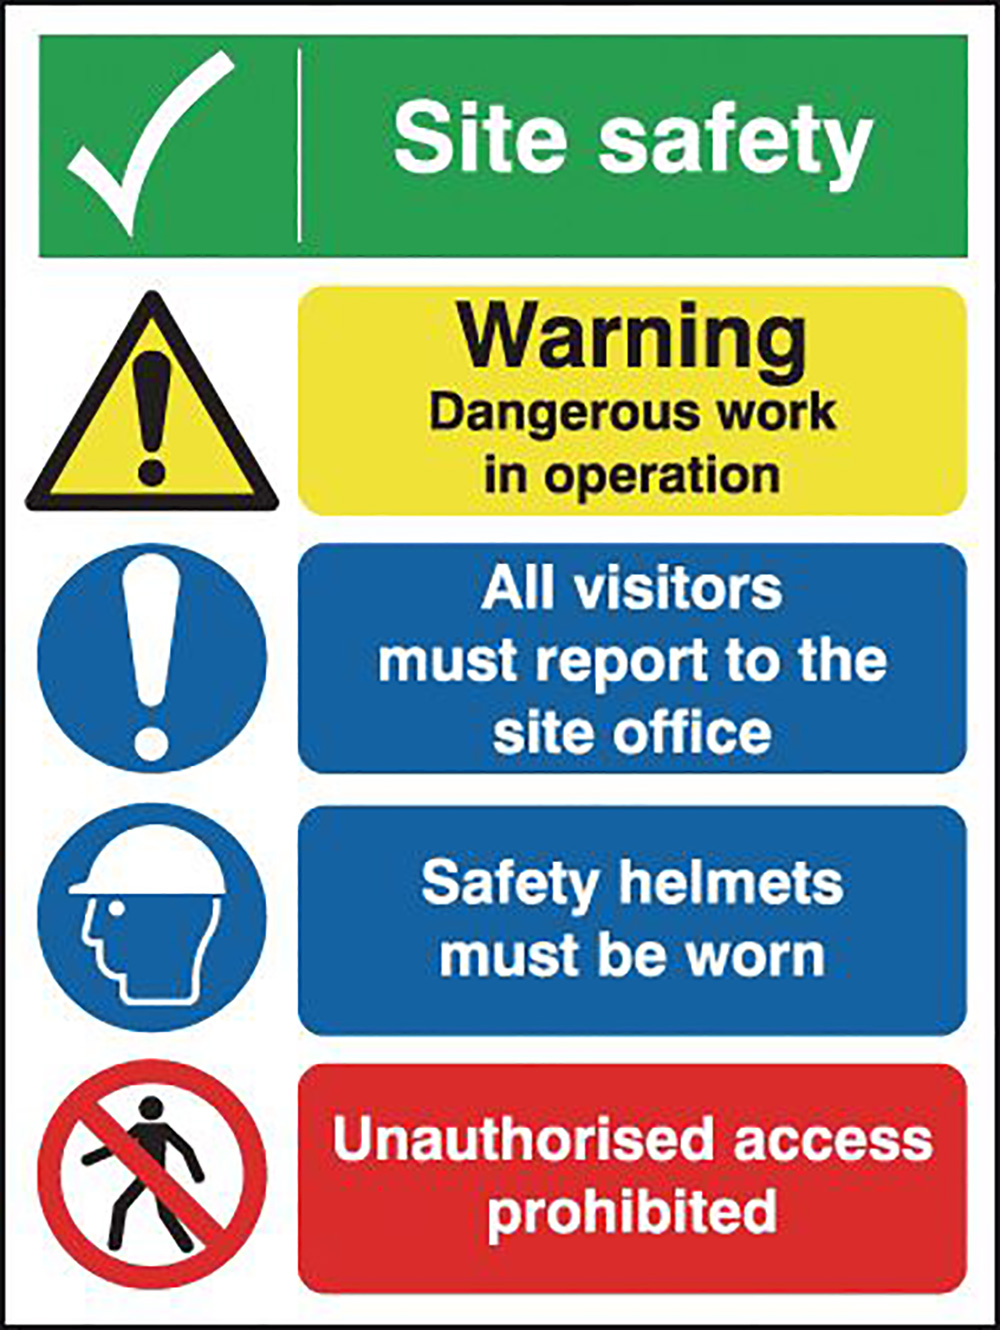 400x300mm Site Safety Warning Dangerous Site Safety Board